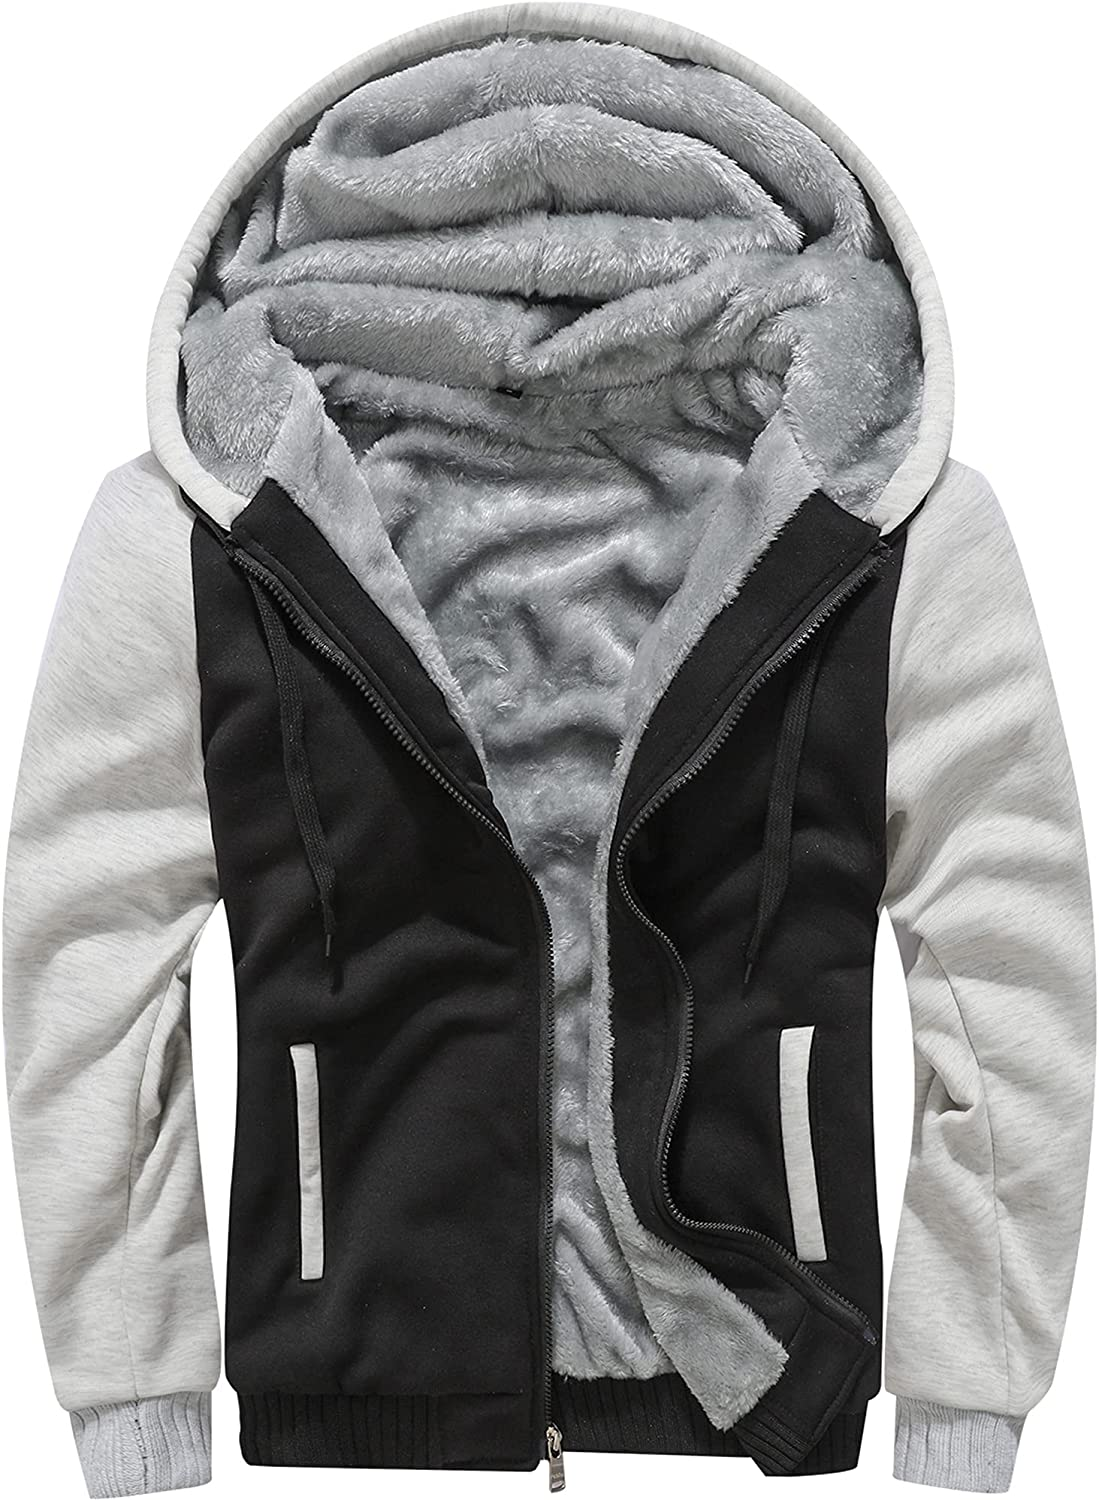 MACHLAB Men's Winter Pullover Thermal Fleece Hoodies Warm Thick Wool Coats Track Jackets Outerwear